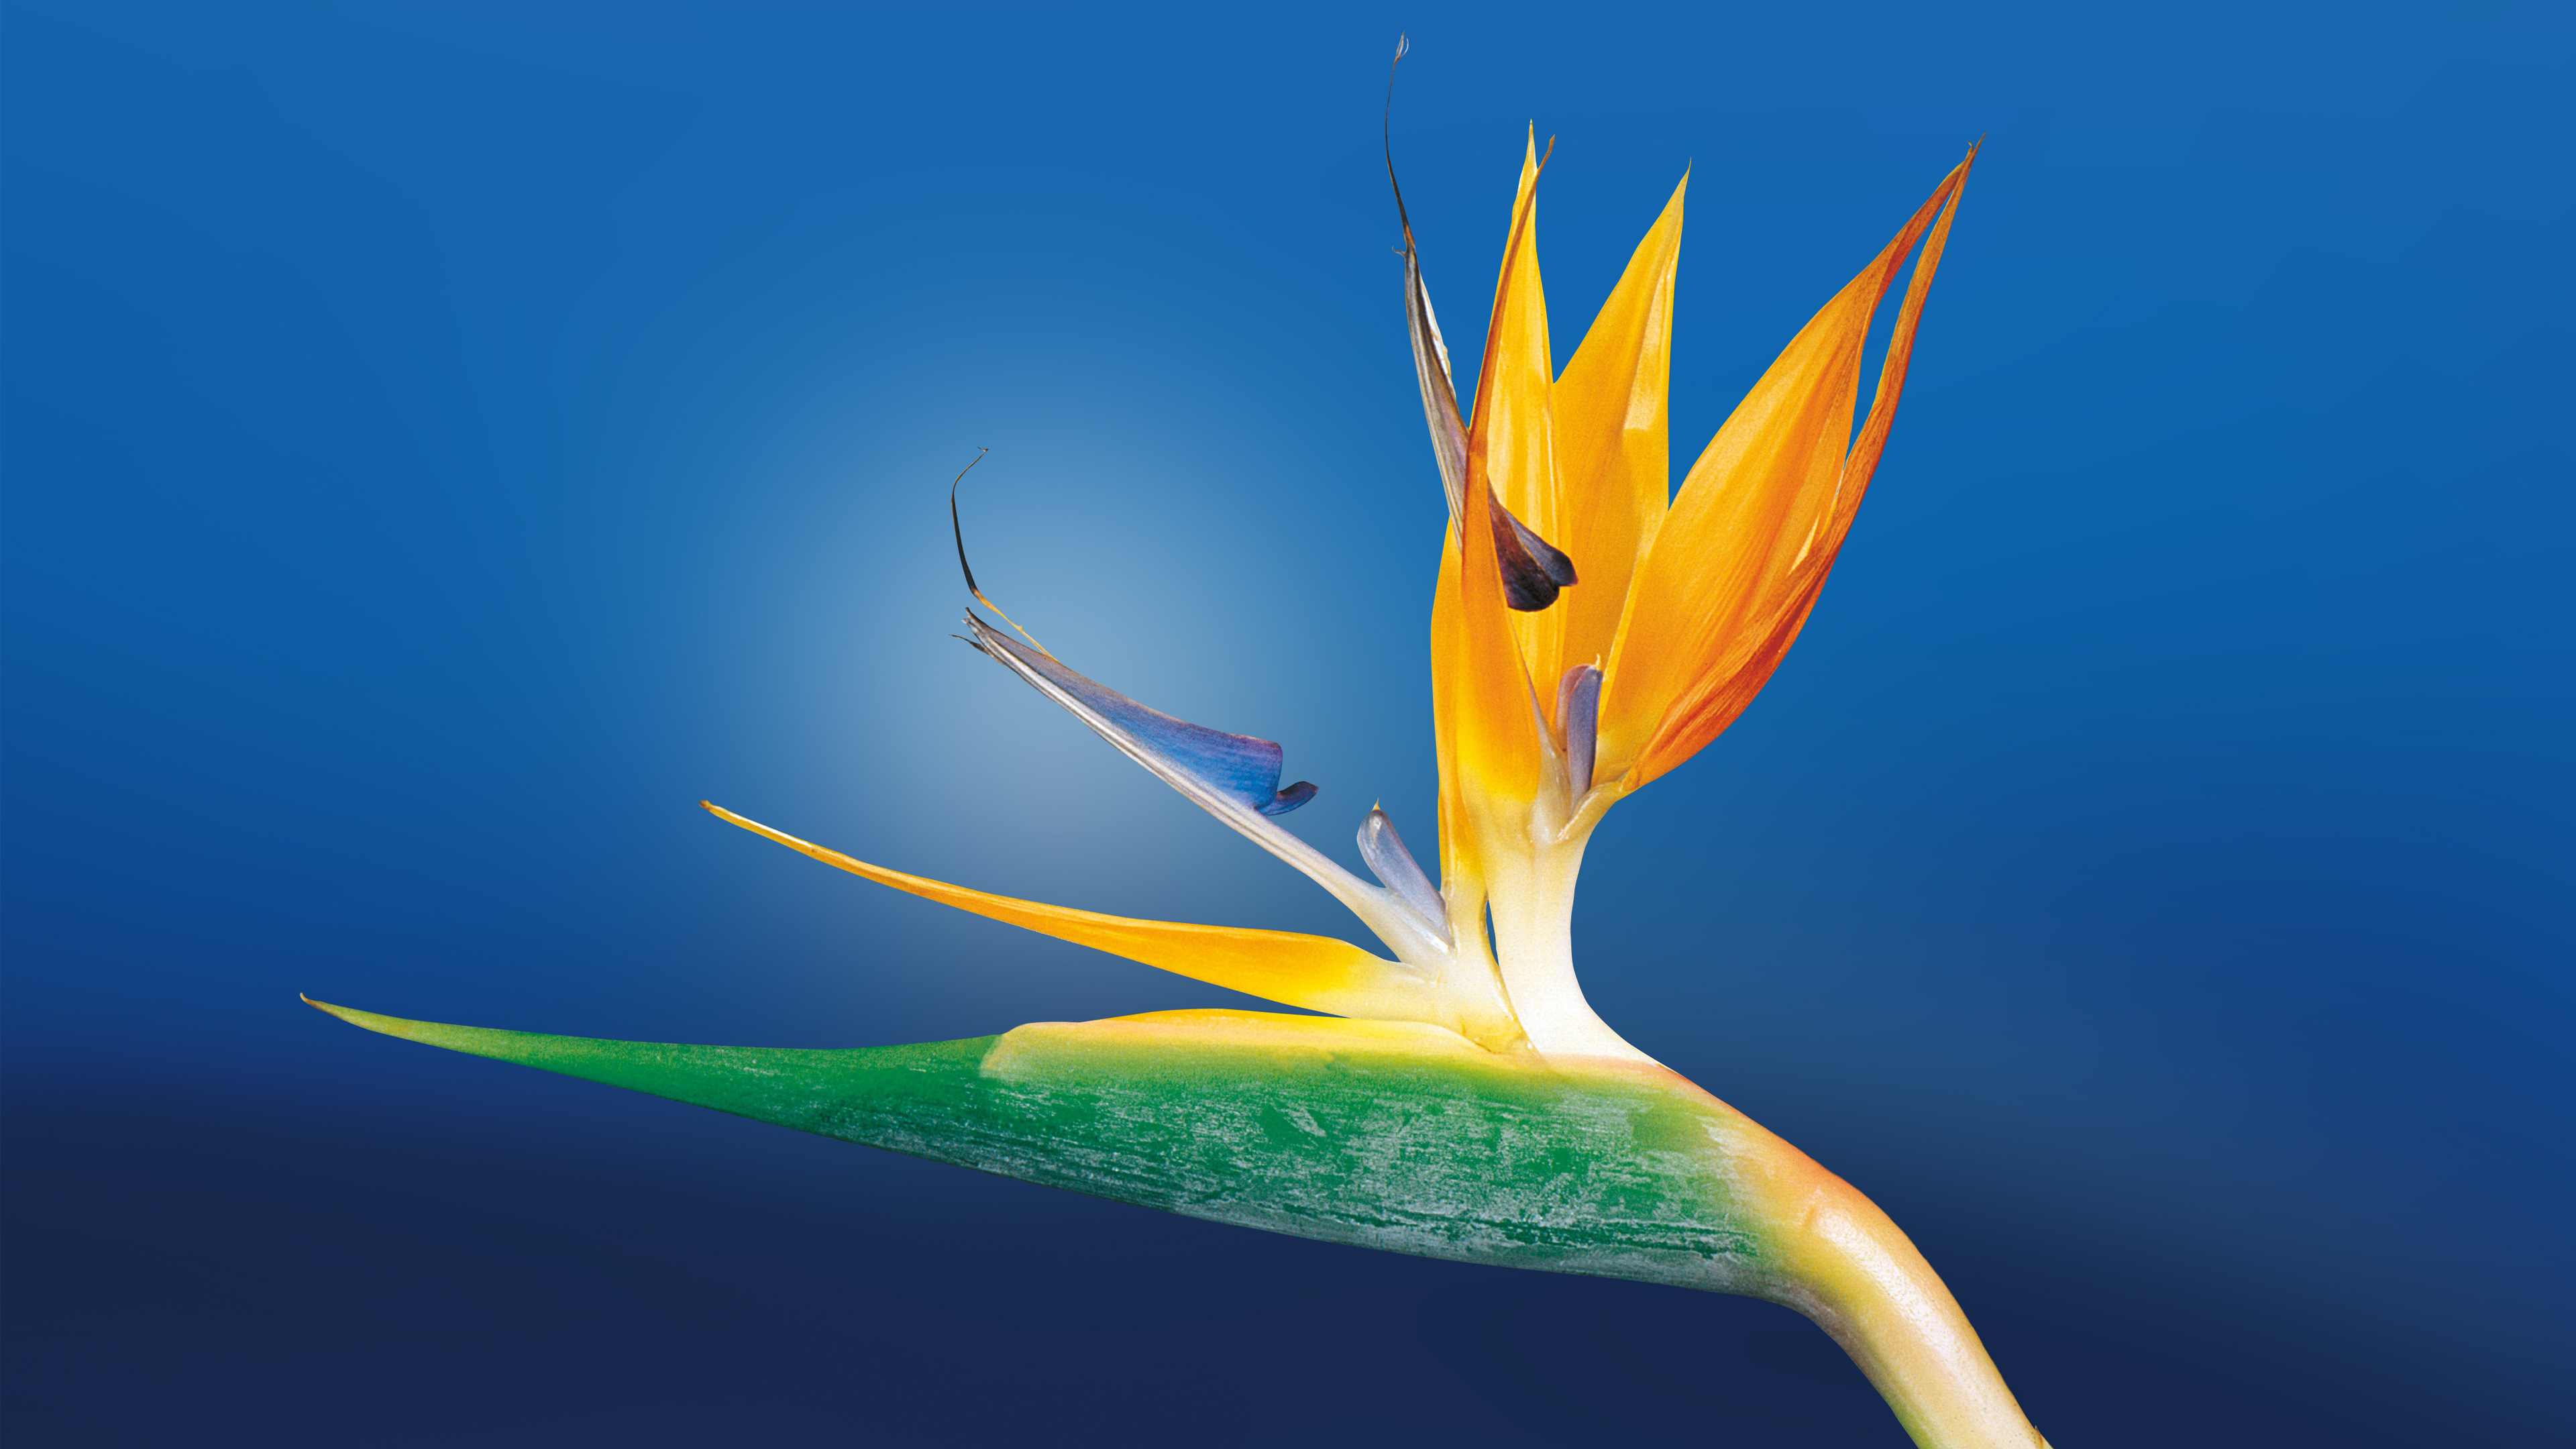 Bird of Paradise Flower 29315 wallpaper